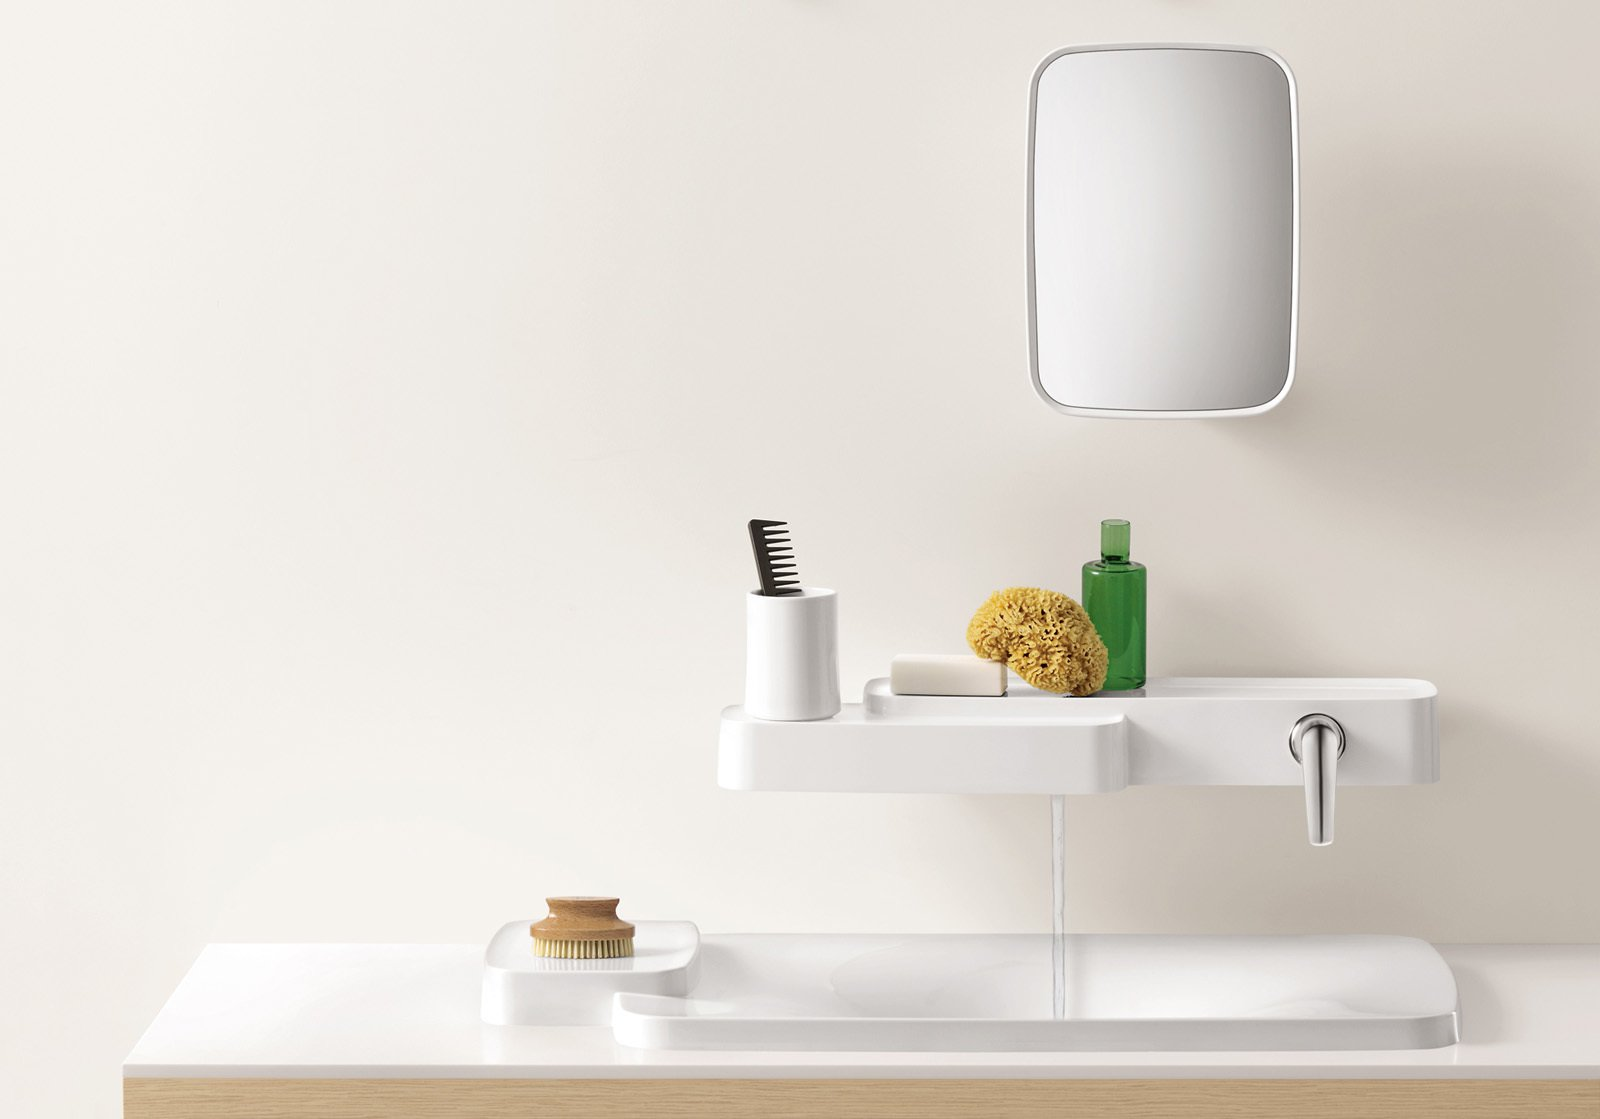 #bath #spa #bath&spa #modern #interior #fixtures #facucets #mineral-cast #shelves #sink #AxorBouroullec #productline #fixtureline  Photo courtesy of Axor Bouroullec  Photo 12 of 22 in Bath & Spa Intrigue